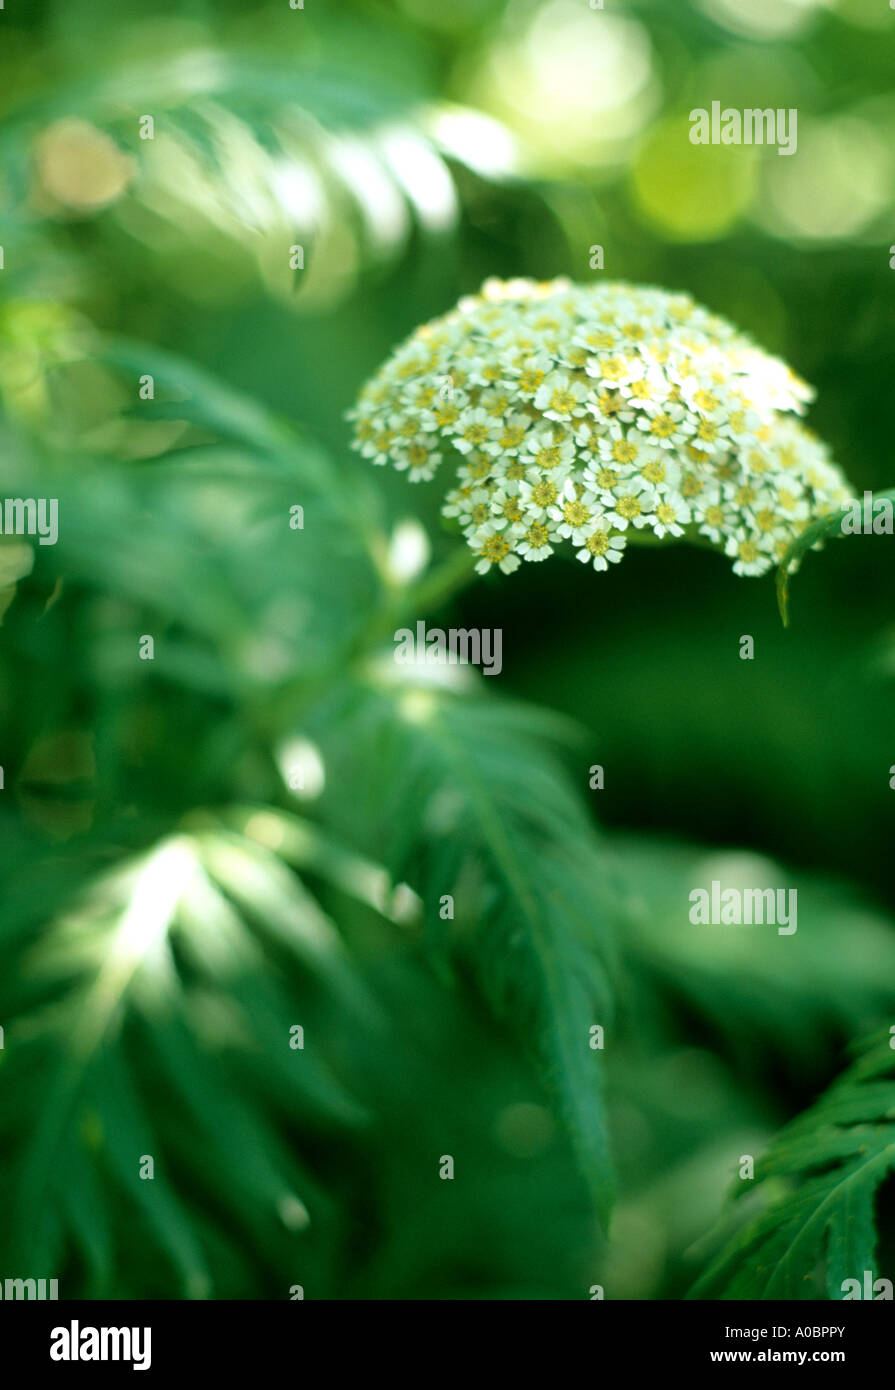 Flower head and leaves in sunlight - Stock Image